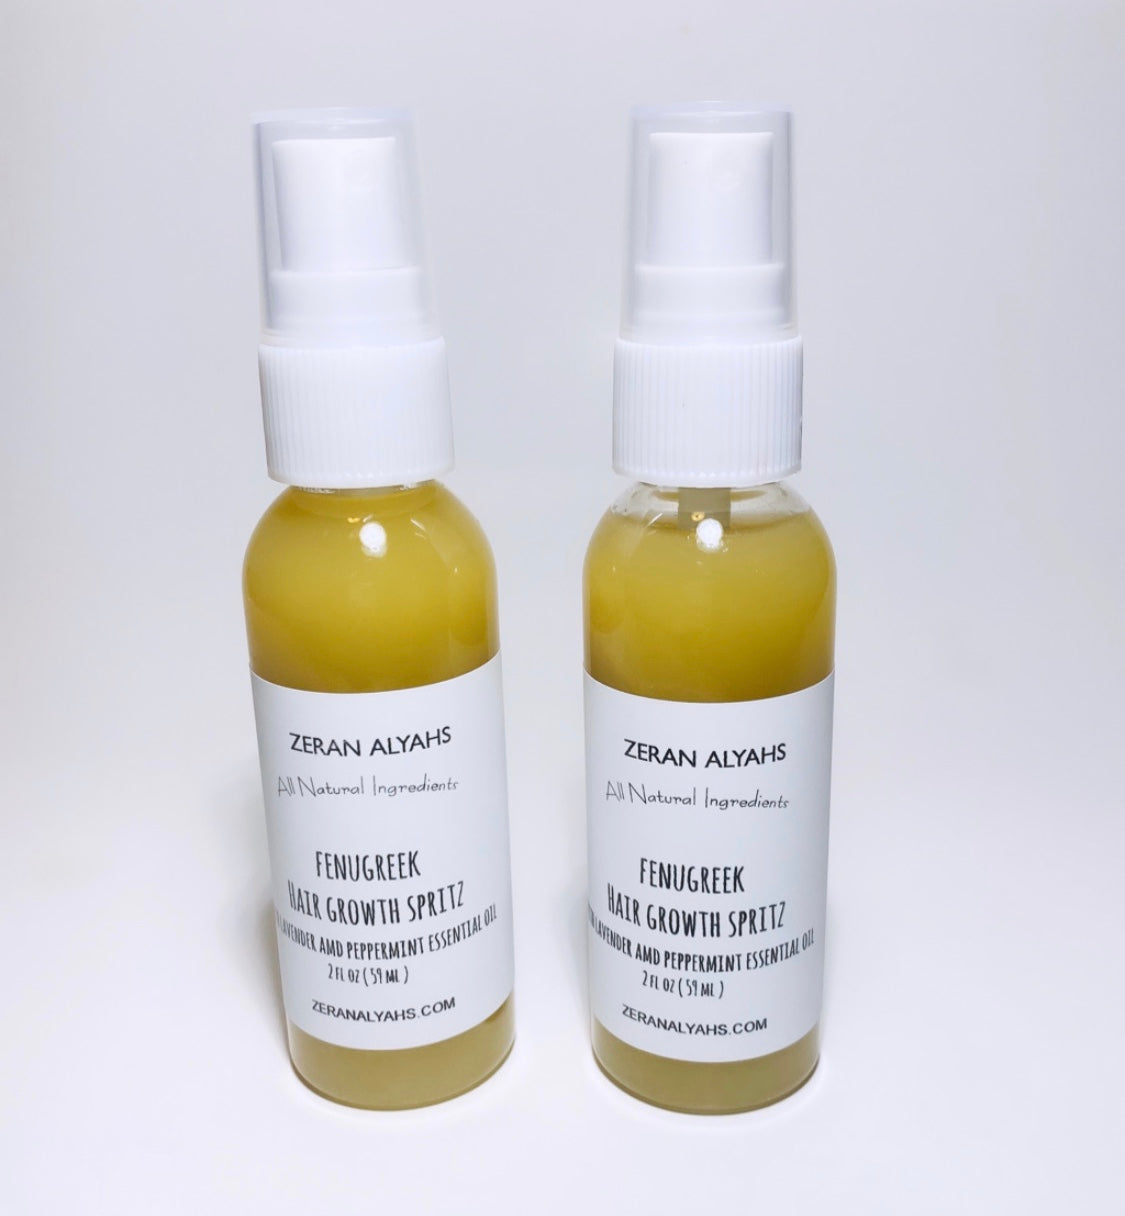 Fenugreek Hair Growth Spritz with Lavender and Peppermint Essential Oil